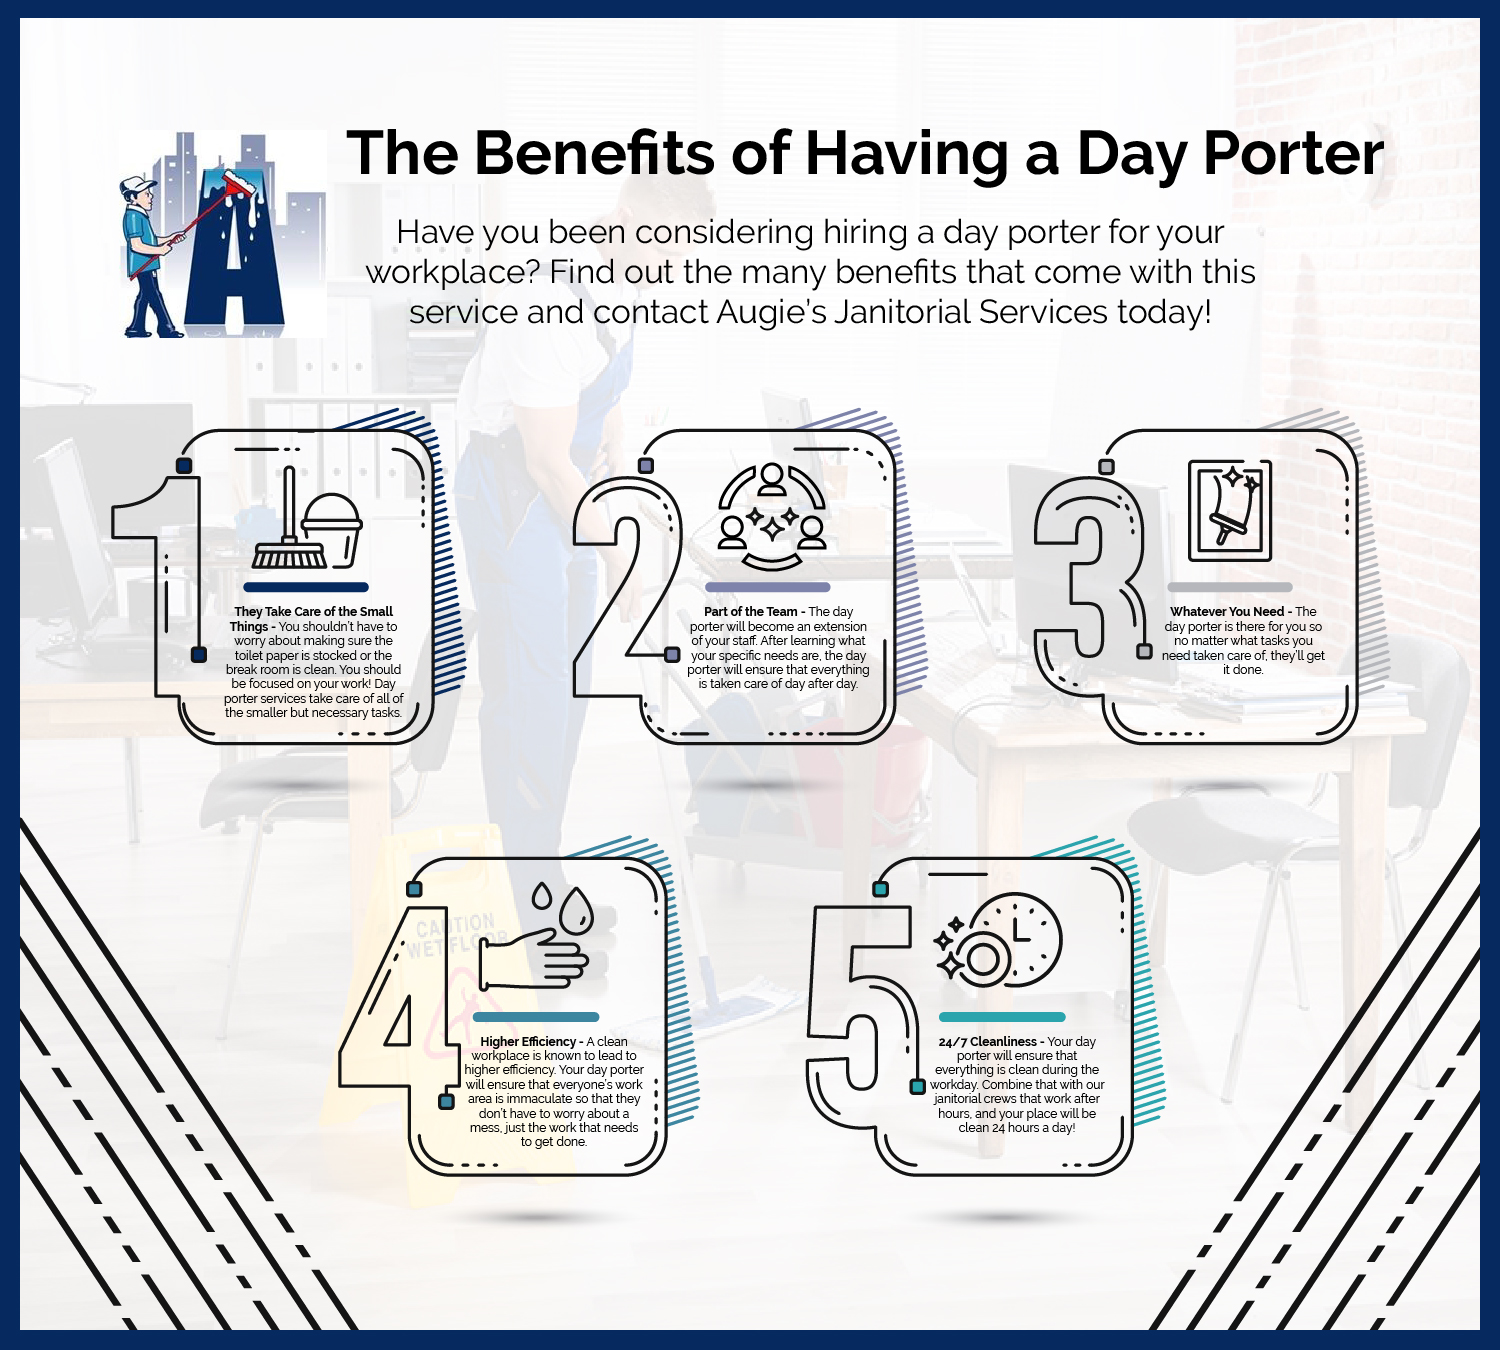 The Benefits of Day Porter Services - Blog and News for Augie's Building Services - Augies-IG-Benefits-of-Day-Porter-01-5c9d3396c0378